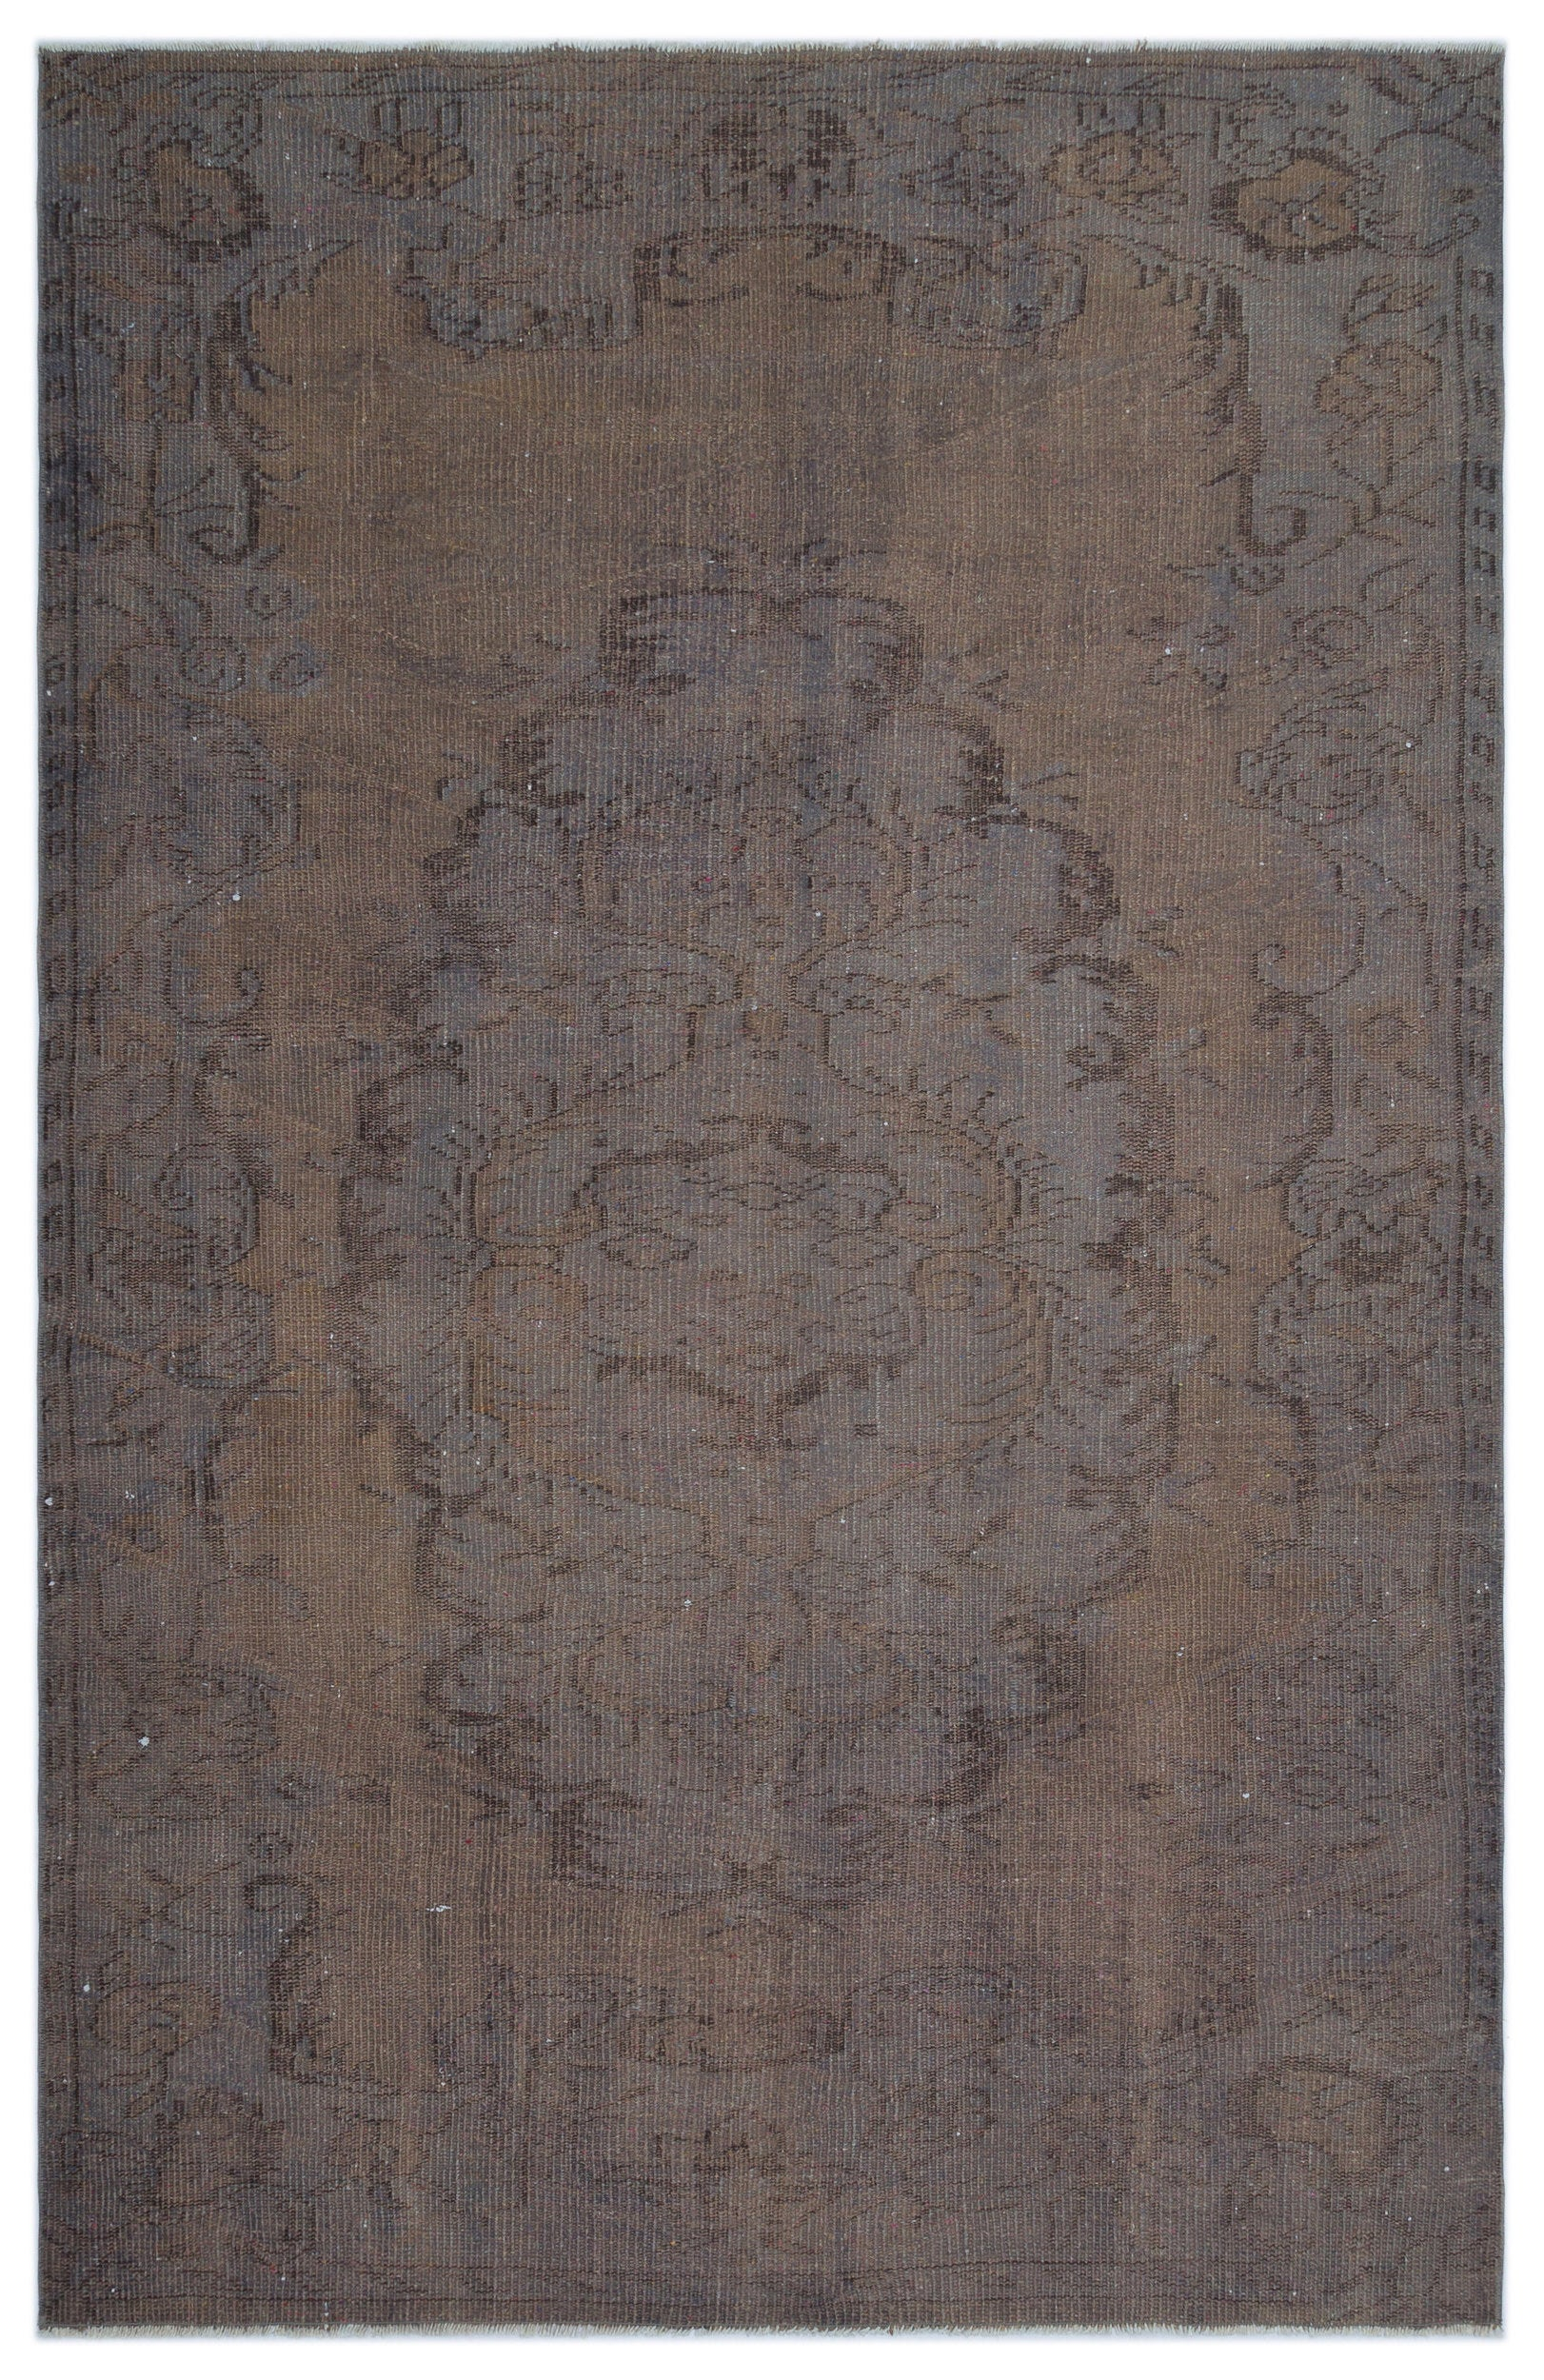 Brown Over Dyed Vintage Rug 5'7'' x 8'6'' ft 169 x 259 cm